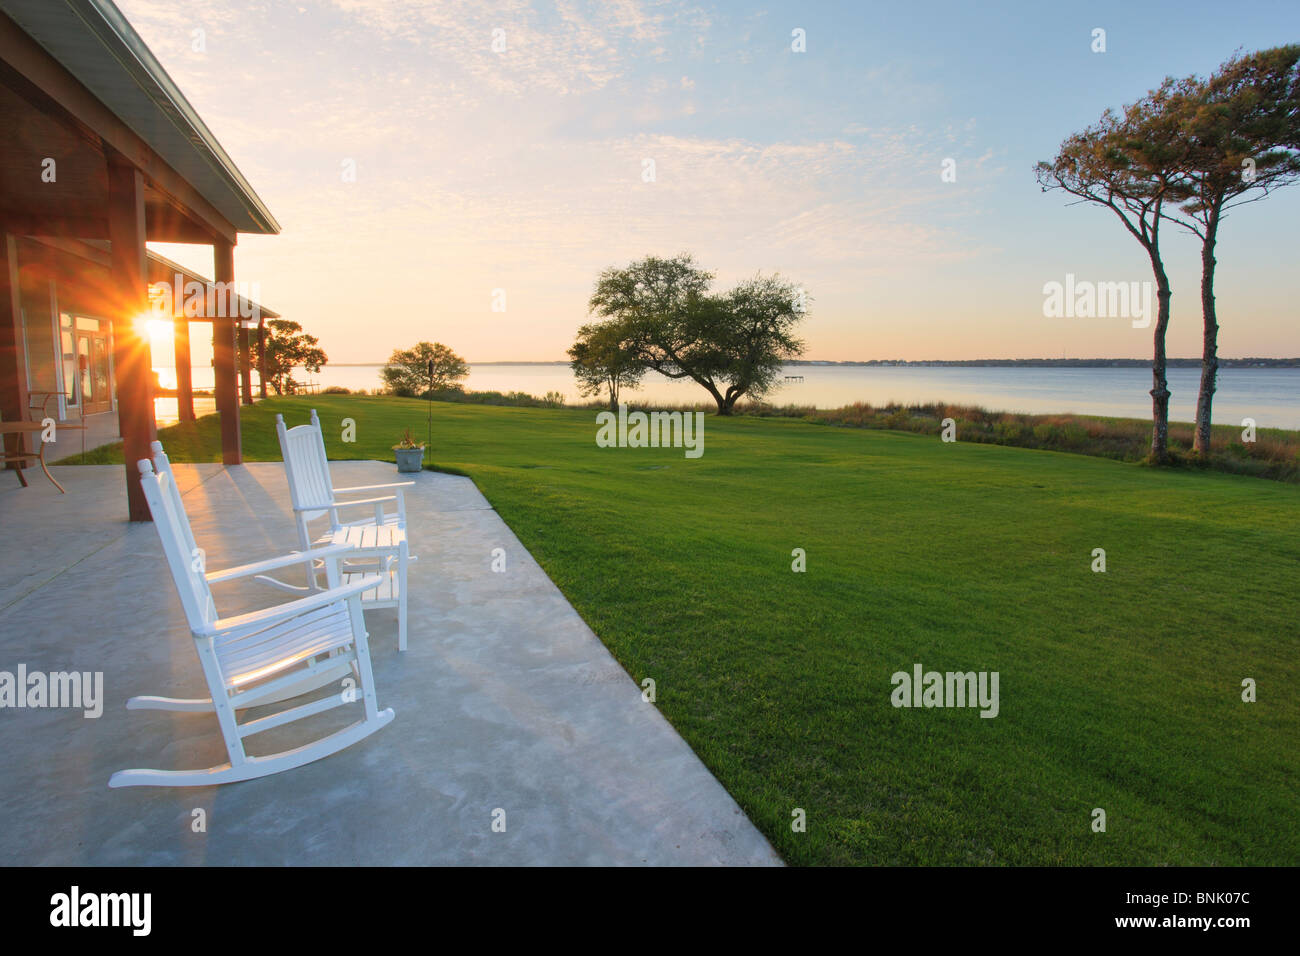 Rocking chairs on patio overlooking sunset over Bogue Sound, Country Club of Crystal Coast, Atlantic Beach, North - Stock Image